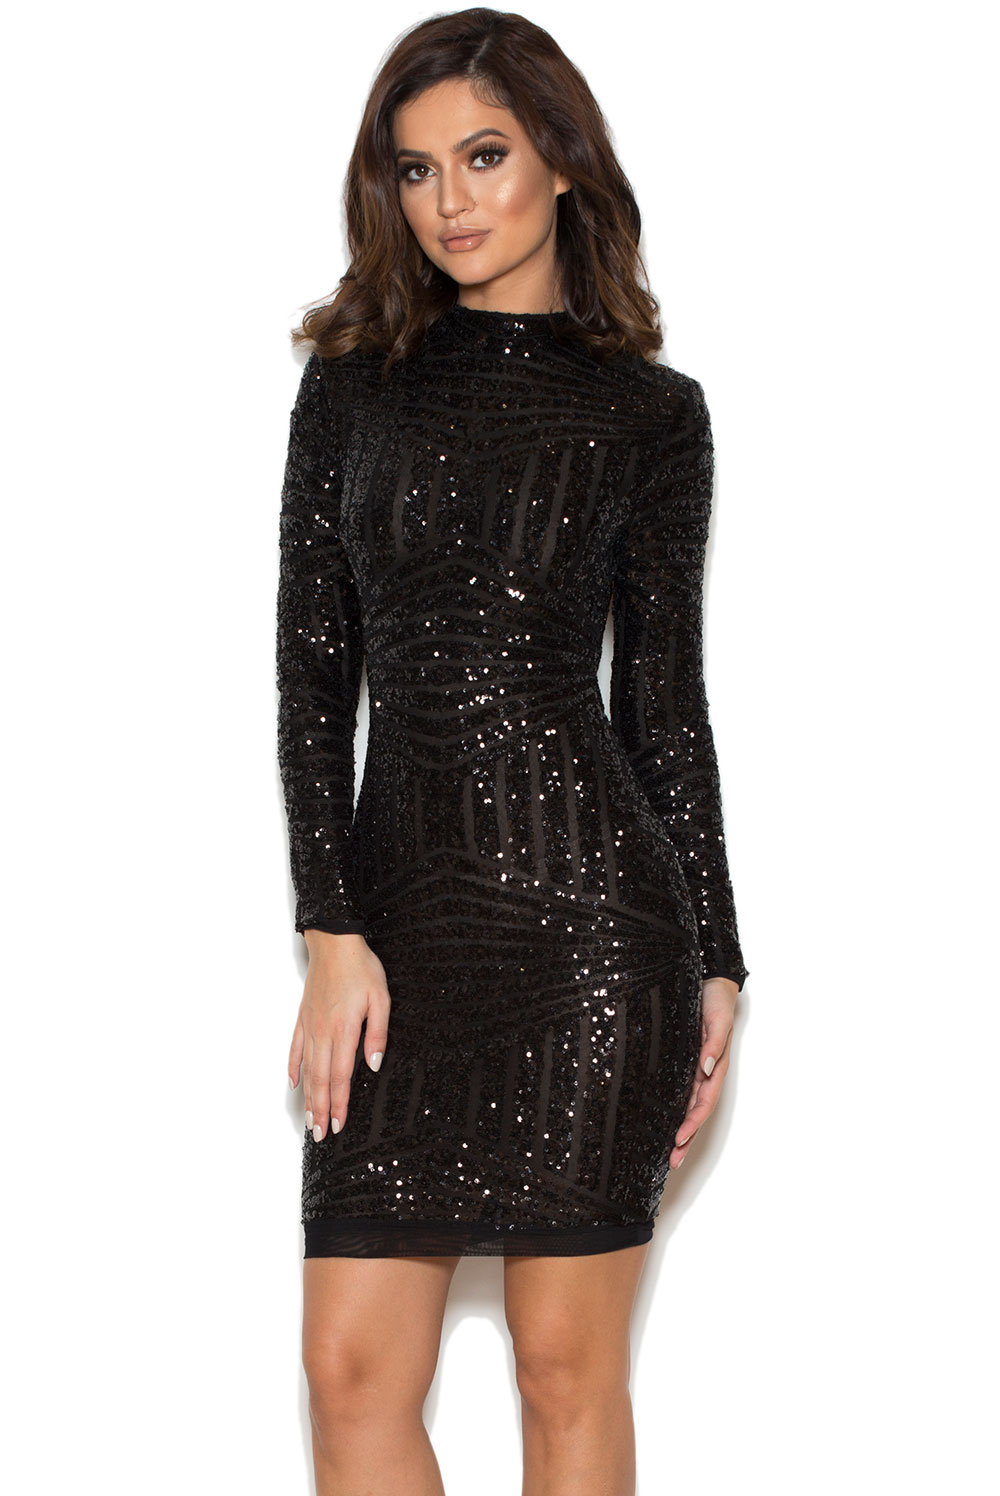 31959410c7f Clothing Bodycon Dresses Zouita Black Embellished Glitter Dress